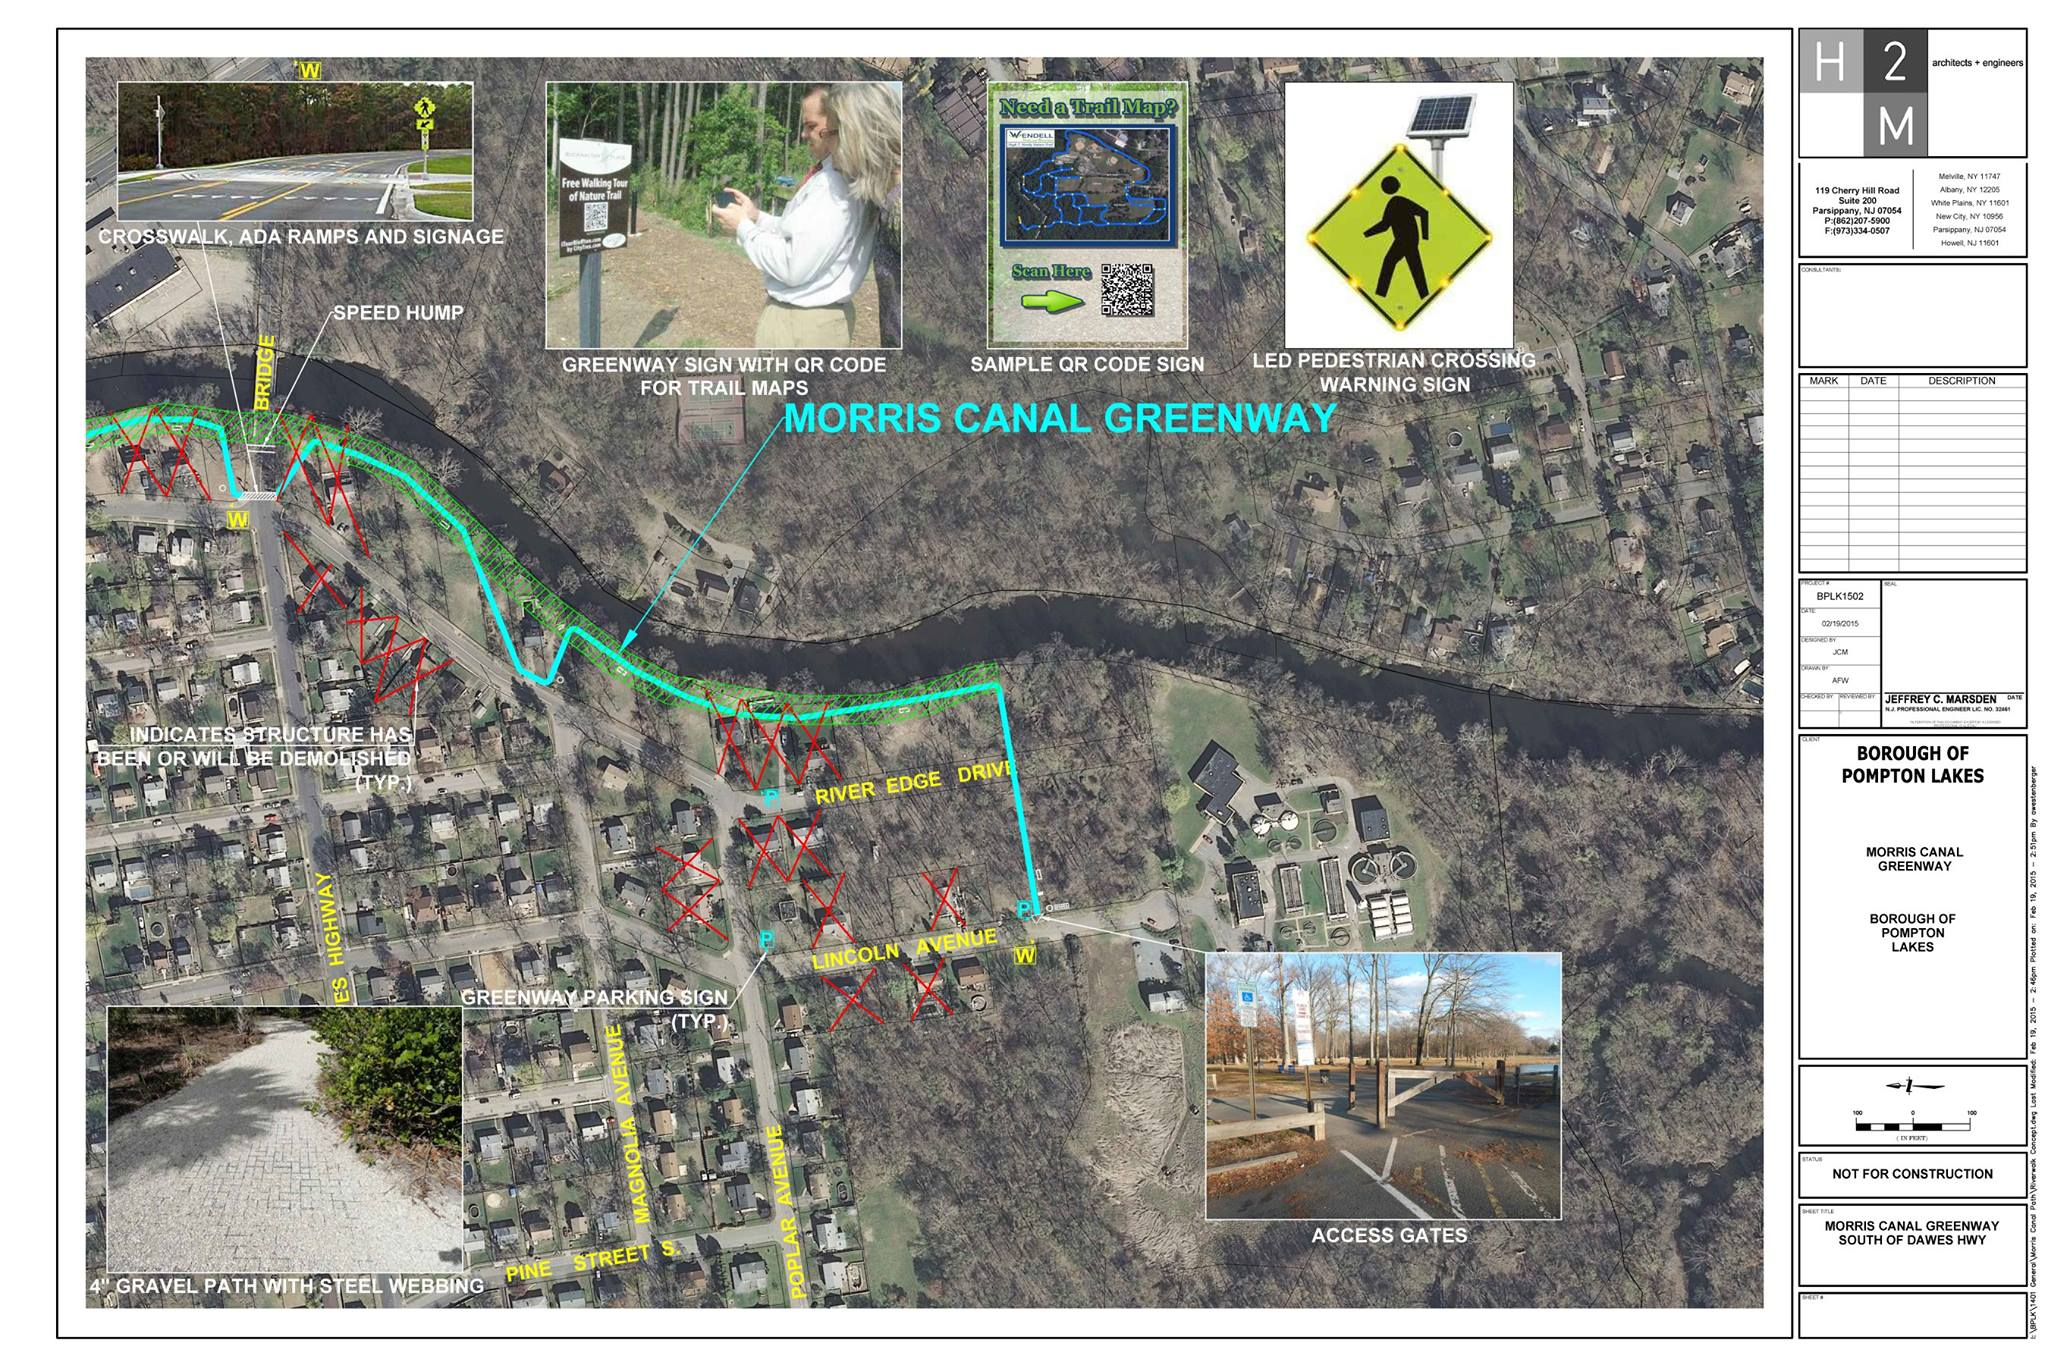 Morris Canal Greenway Project Overview Map